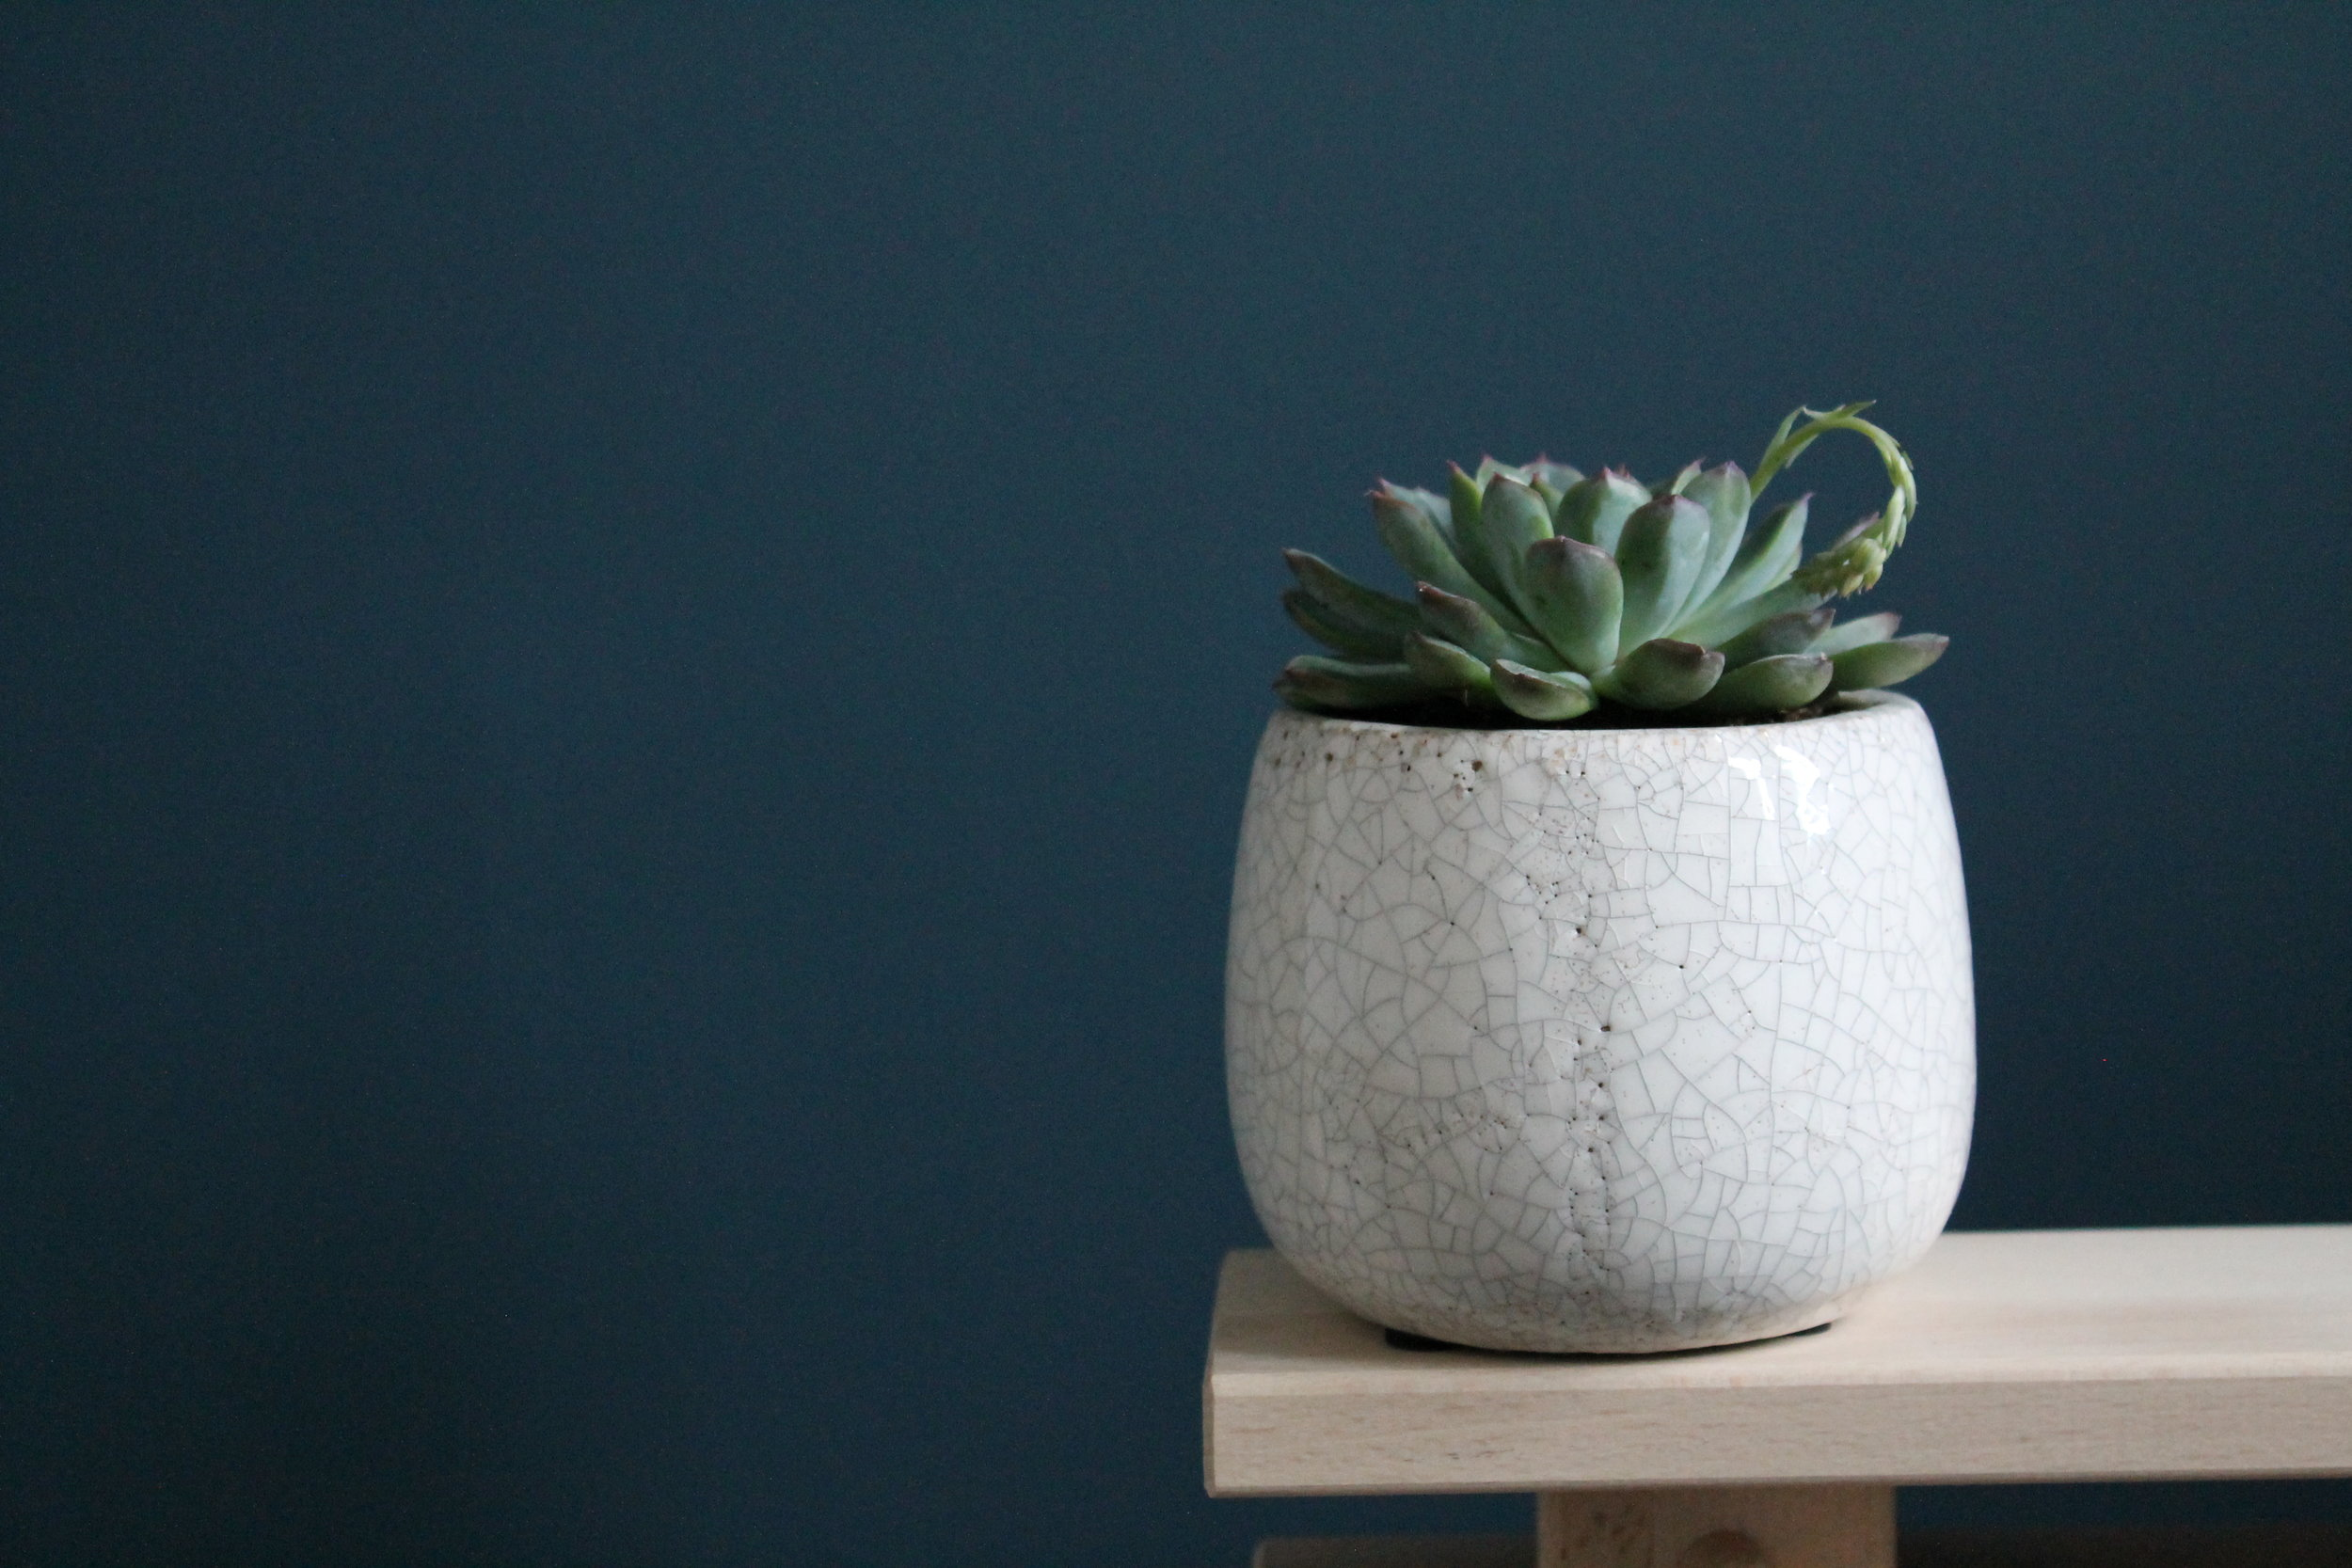 Amalfi Ceramic Pot - The Amalfi ceramic pot is handmade with a crackle white glaze. With its round shape, the Amalfi pot is suitable for all plant types, from contemporary contrasting dark succulent, to more traditional herbs and lavender.Designed with the Amalfi coast in mind, the unique exterior has an almost ancient Italian feel to it.This indoor plant pot will look great on a shelf or a windowsill. We think it would look striking lined as a trio on a dining table.